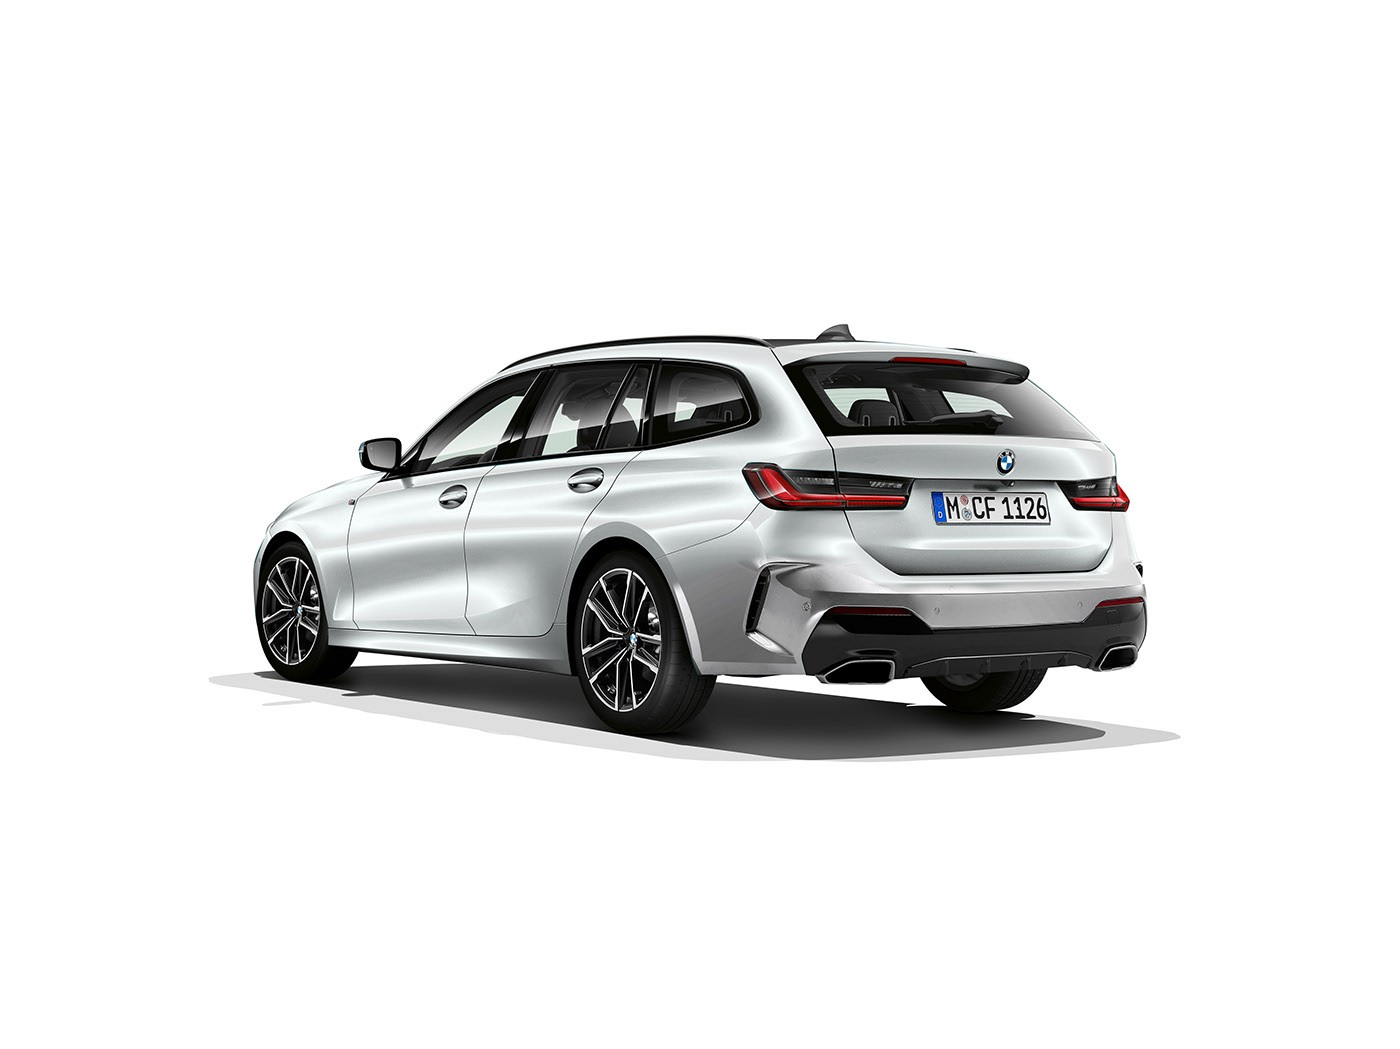 2020 - [BMW] M3/M4 - Page 19 2023-bmw-m3-touring-rendered-with-giant-grille-looks-ugly_1